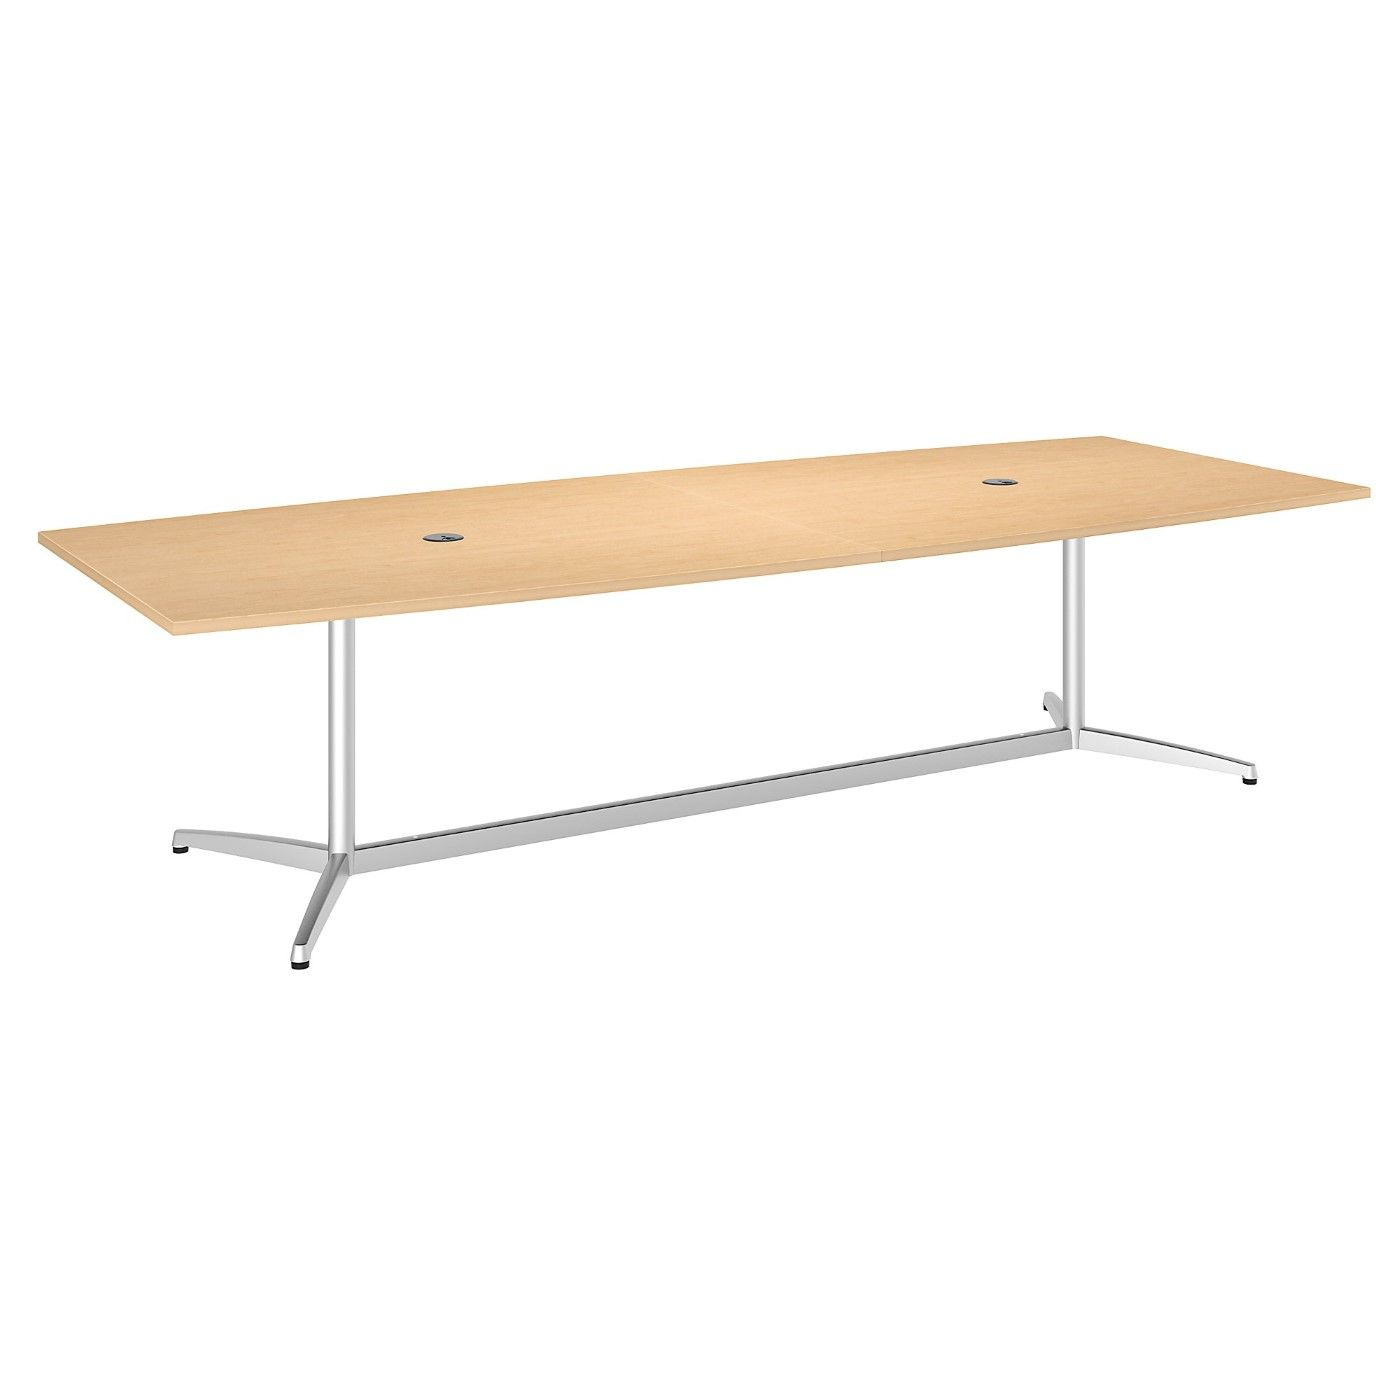 BUSH BUSINESS FURNITURE 120W X 48D BOAT SHAPED CONFERENCE TABLE WITH METAL BASE. FREE SHIPPING